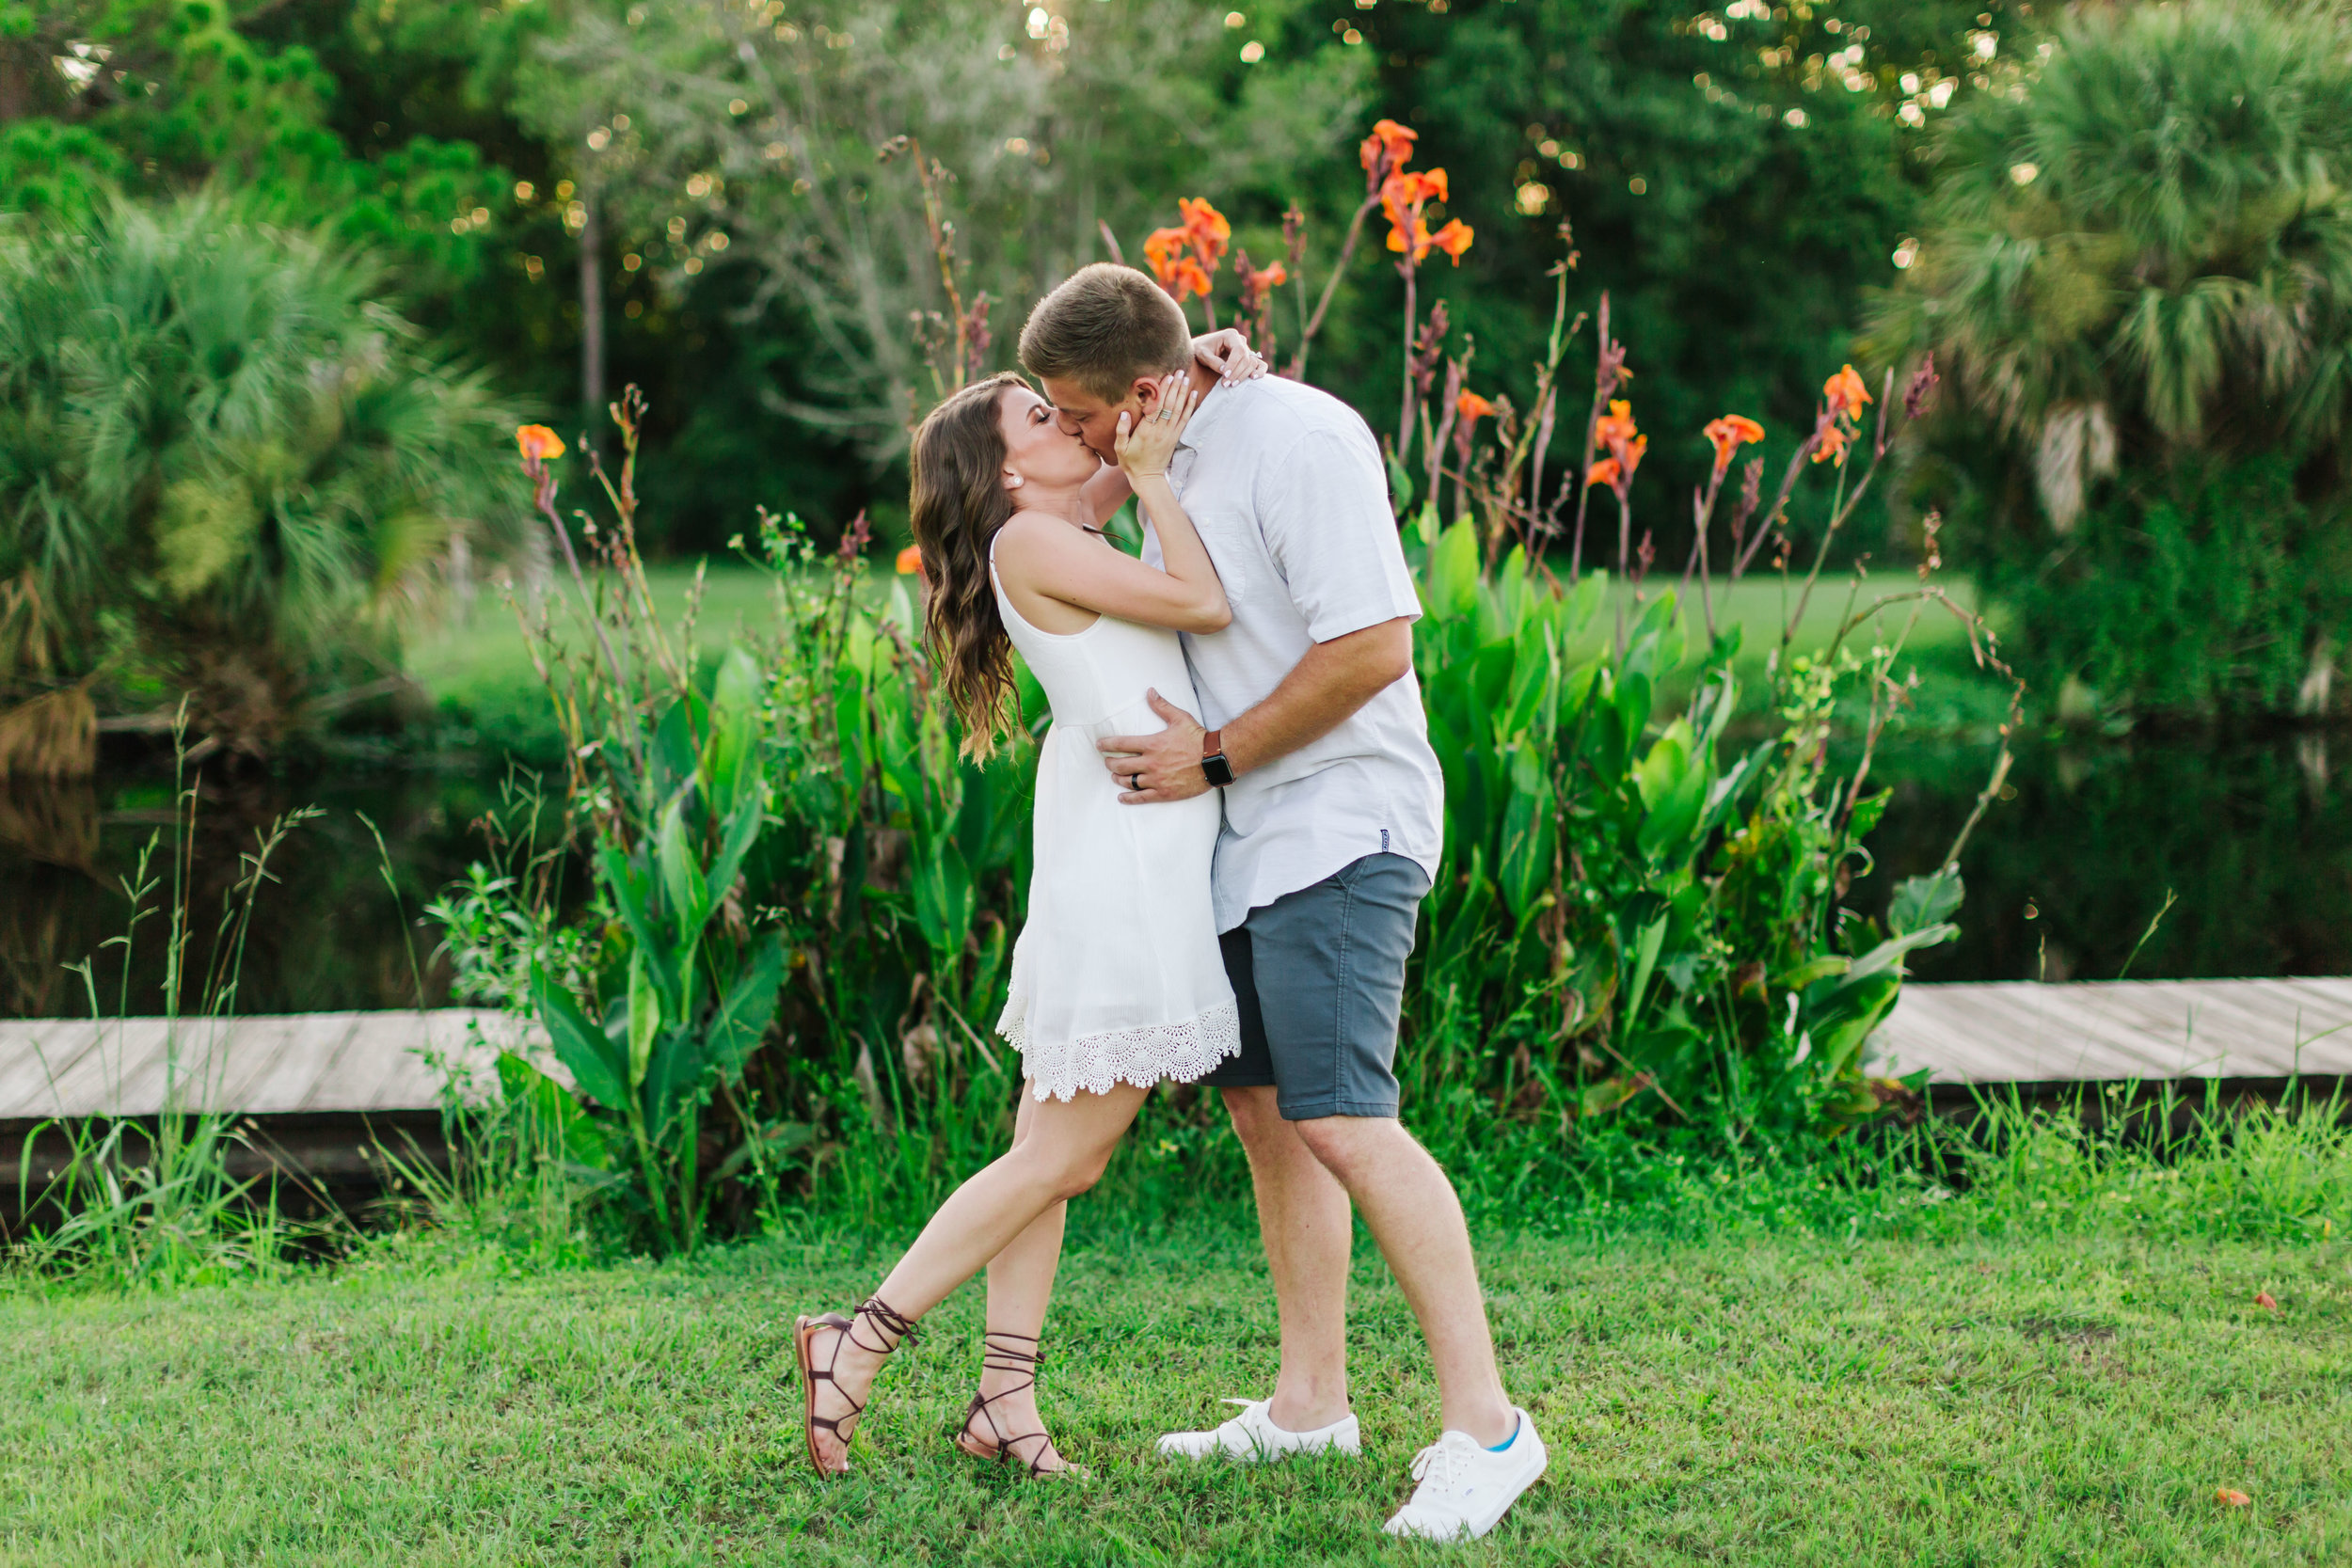 2018.08.10 Jay and Lauren Engagement Elopement Session at Fox Lake Park Titusville THE HORNES-98.jpg